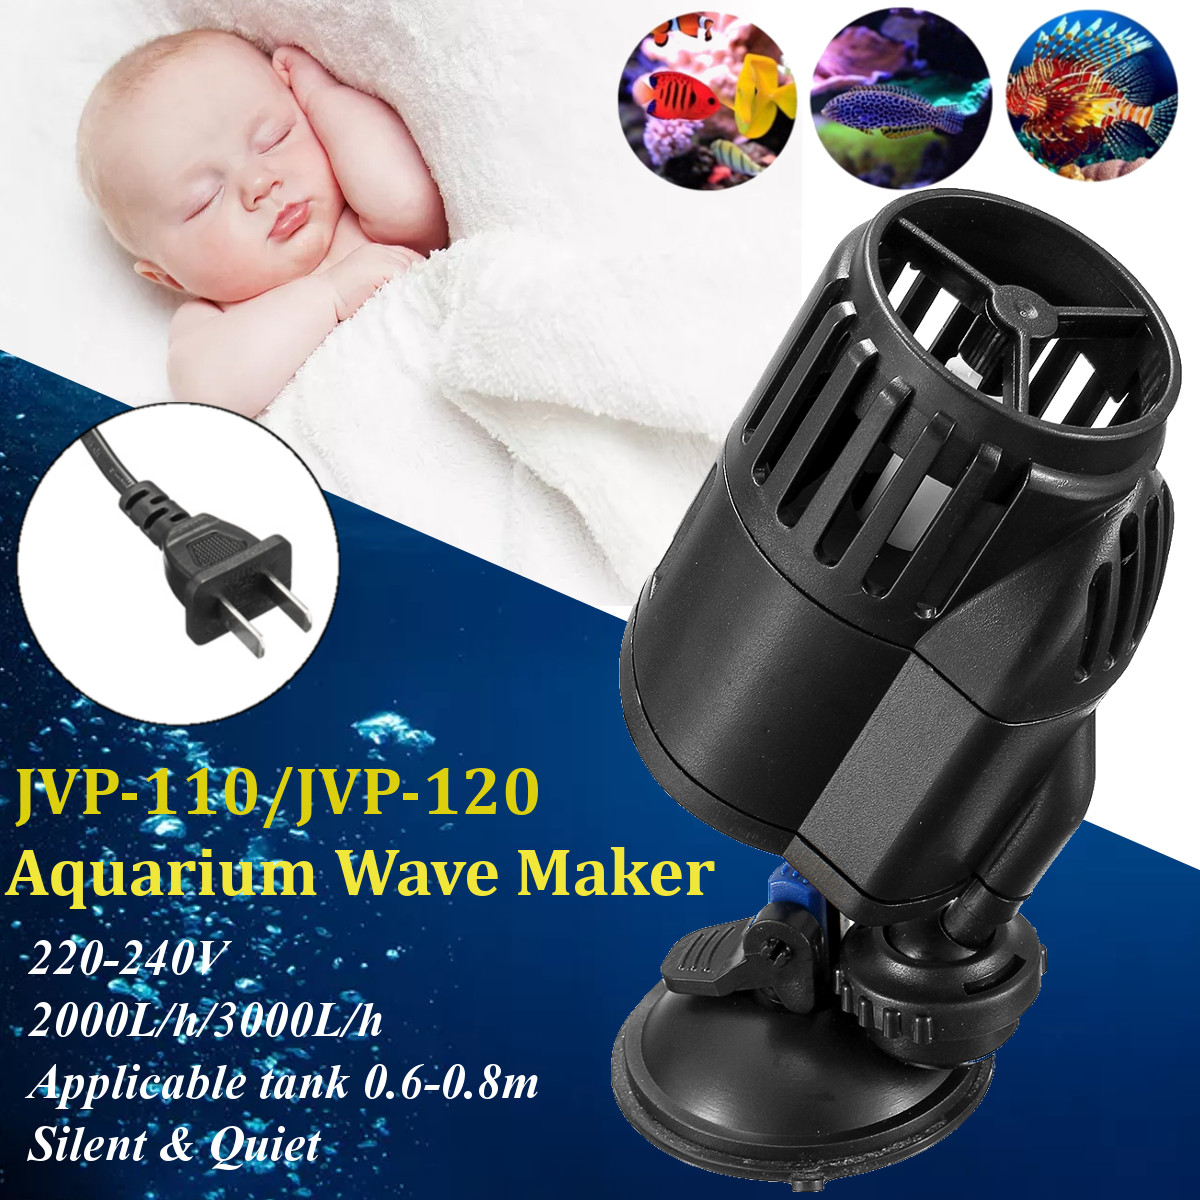 Circulation Aquarium Water Pump Wave Maker Suction Cup Mount Flow Powerhead for Aquarium Fish Tank